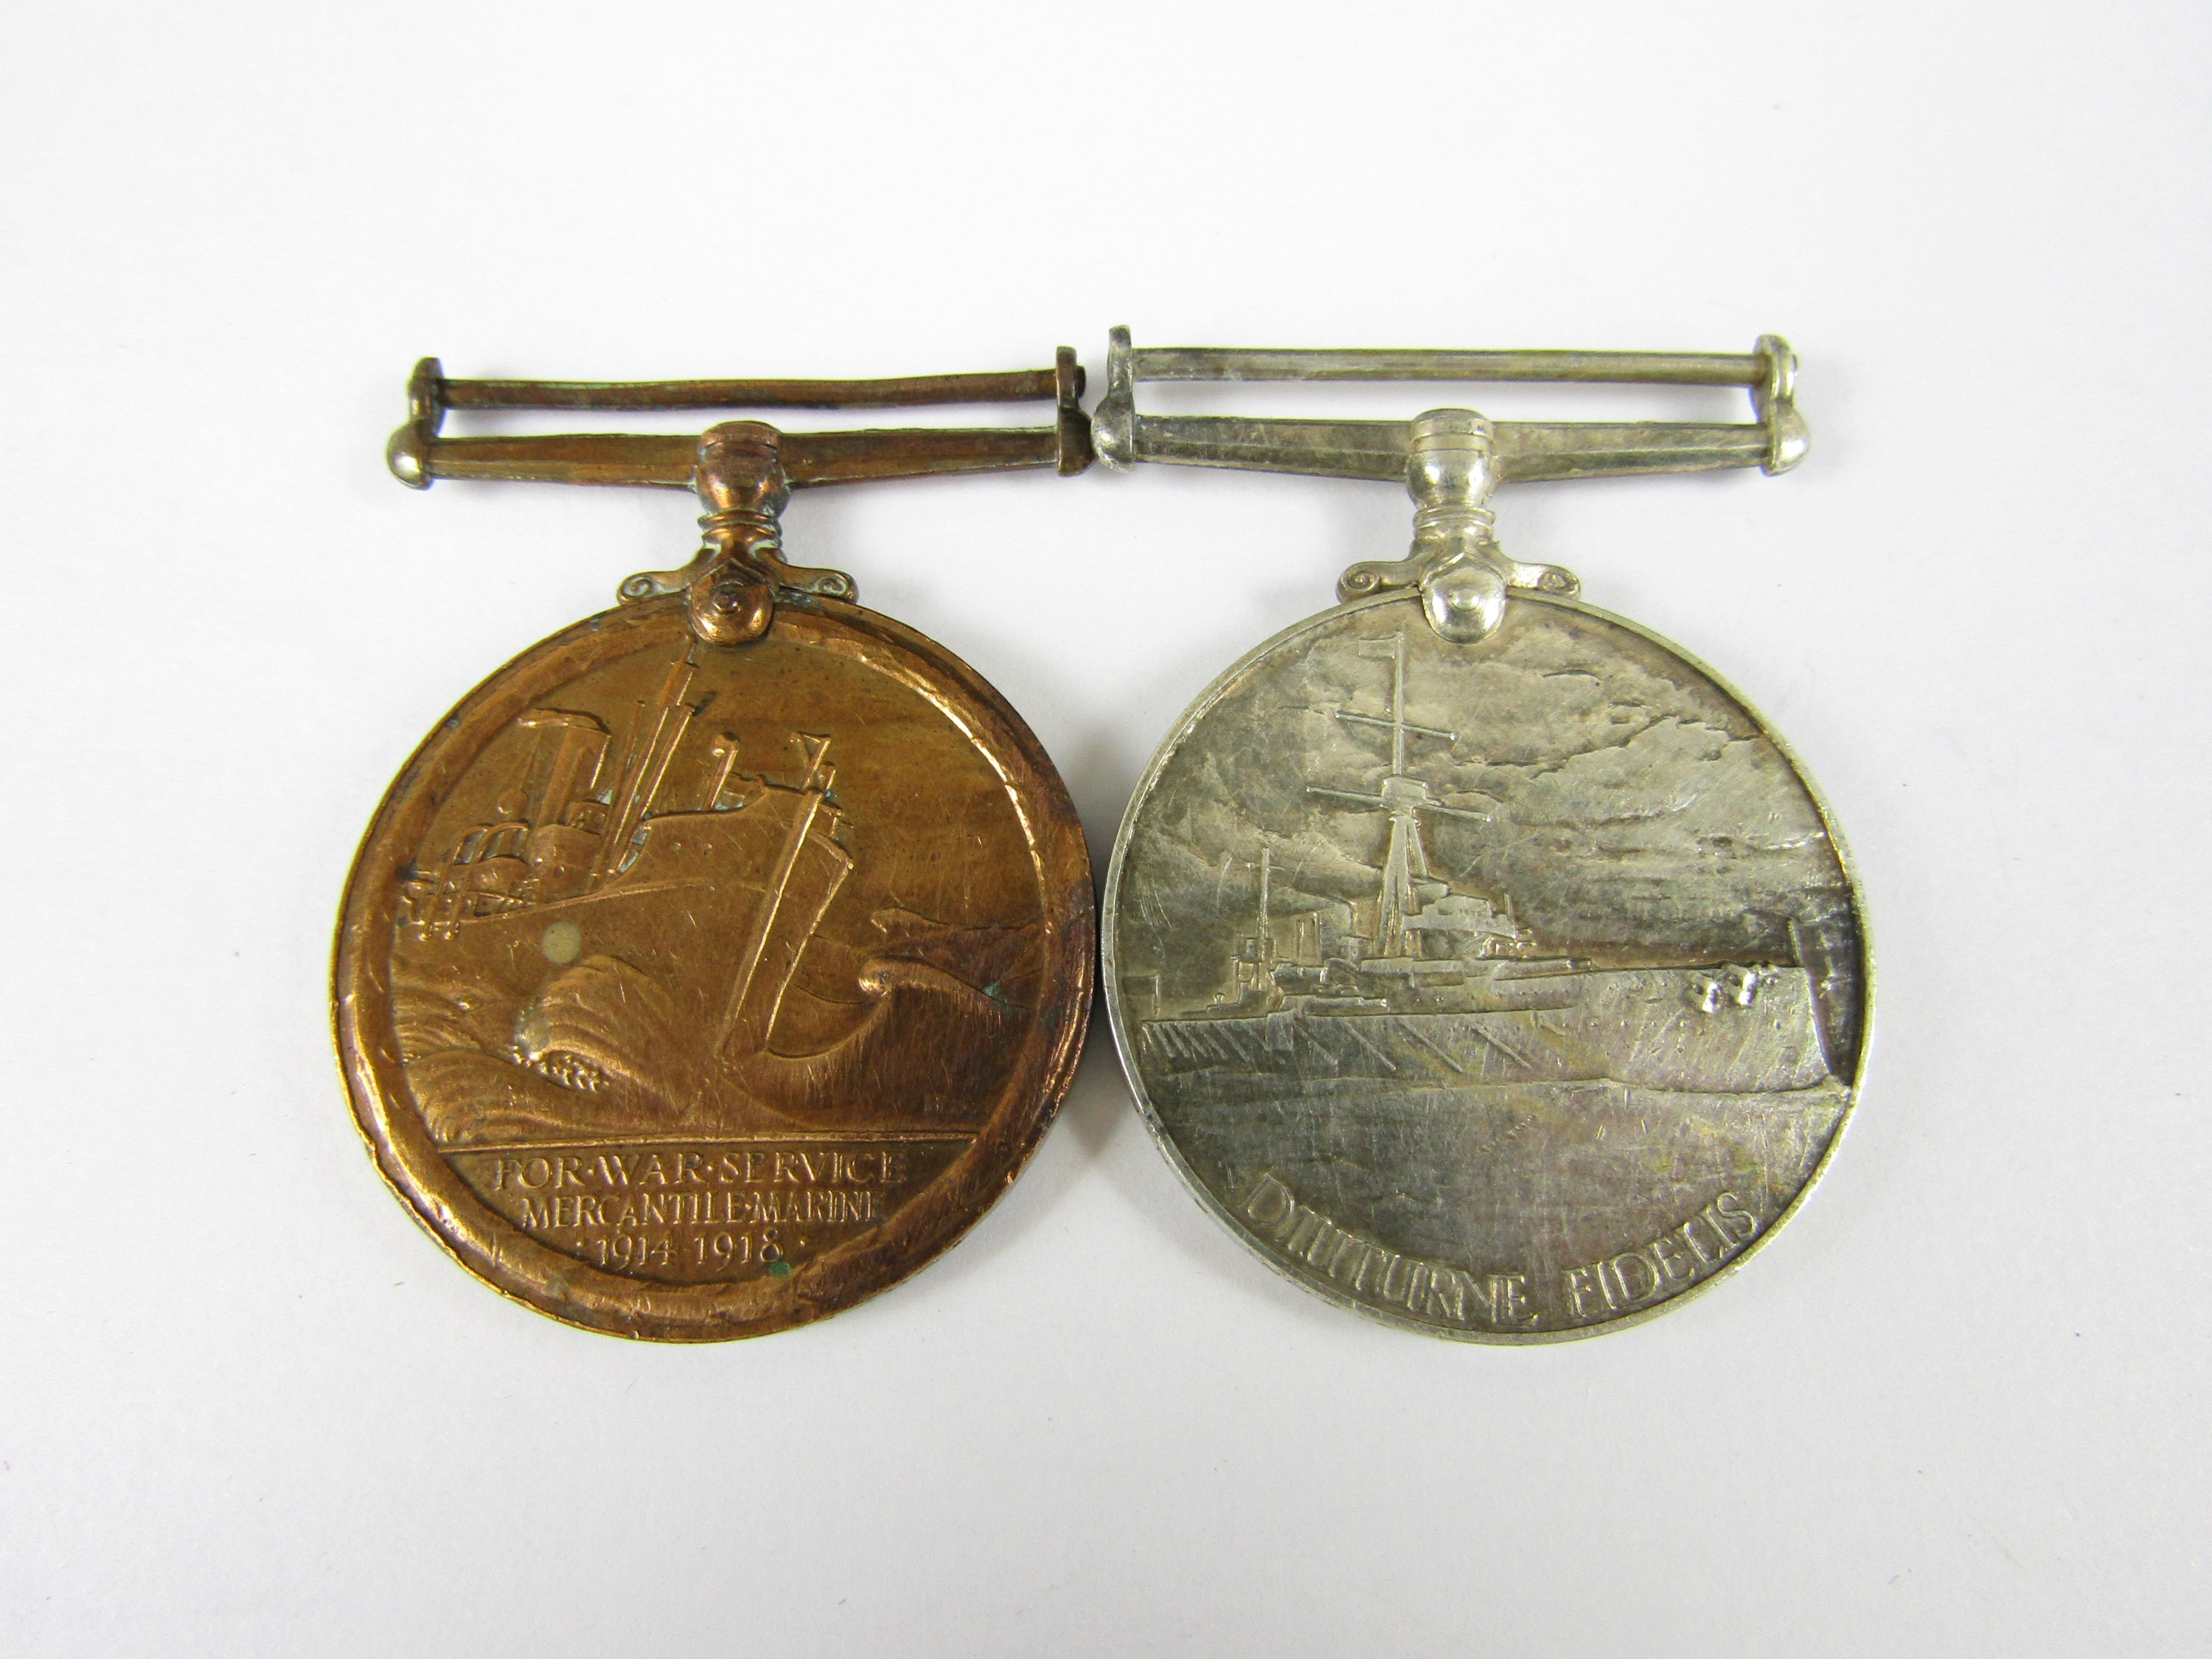 Lot 3 - A George VI Naval Reserve Long Service Medal and Mercantile Marine Medal pair to 5883 D Thomas F